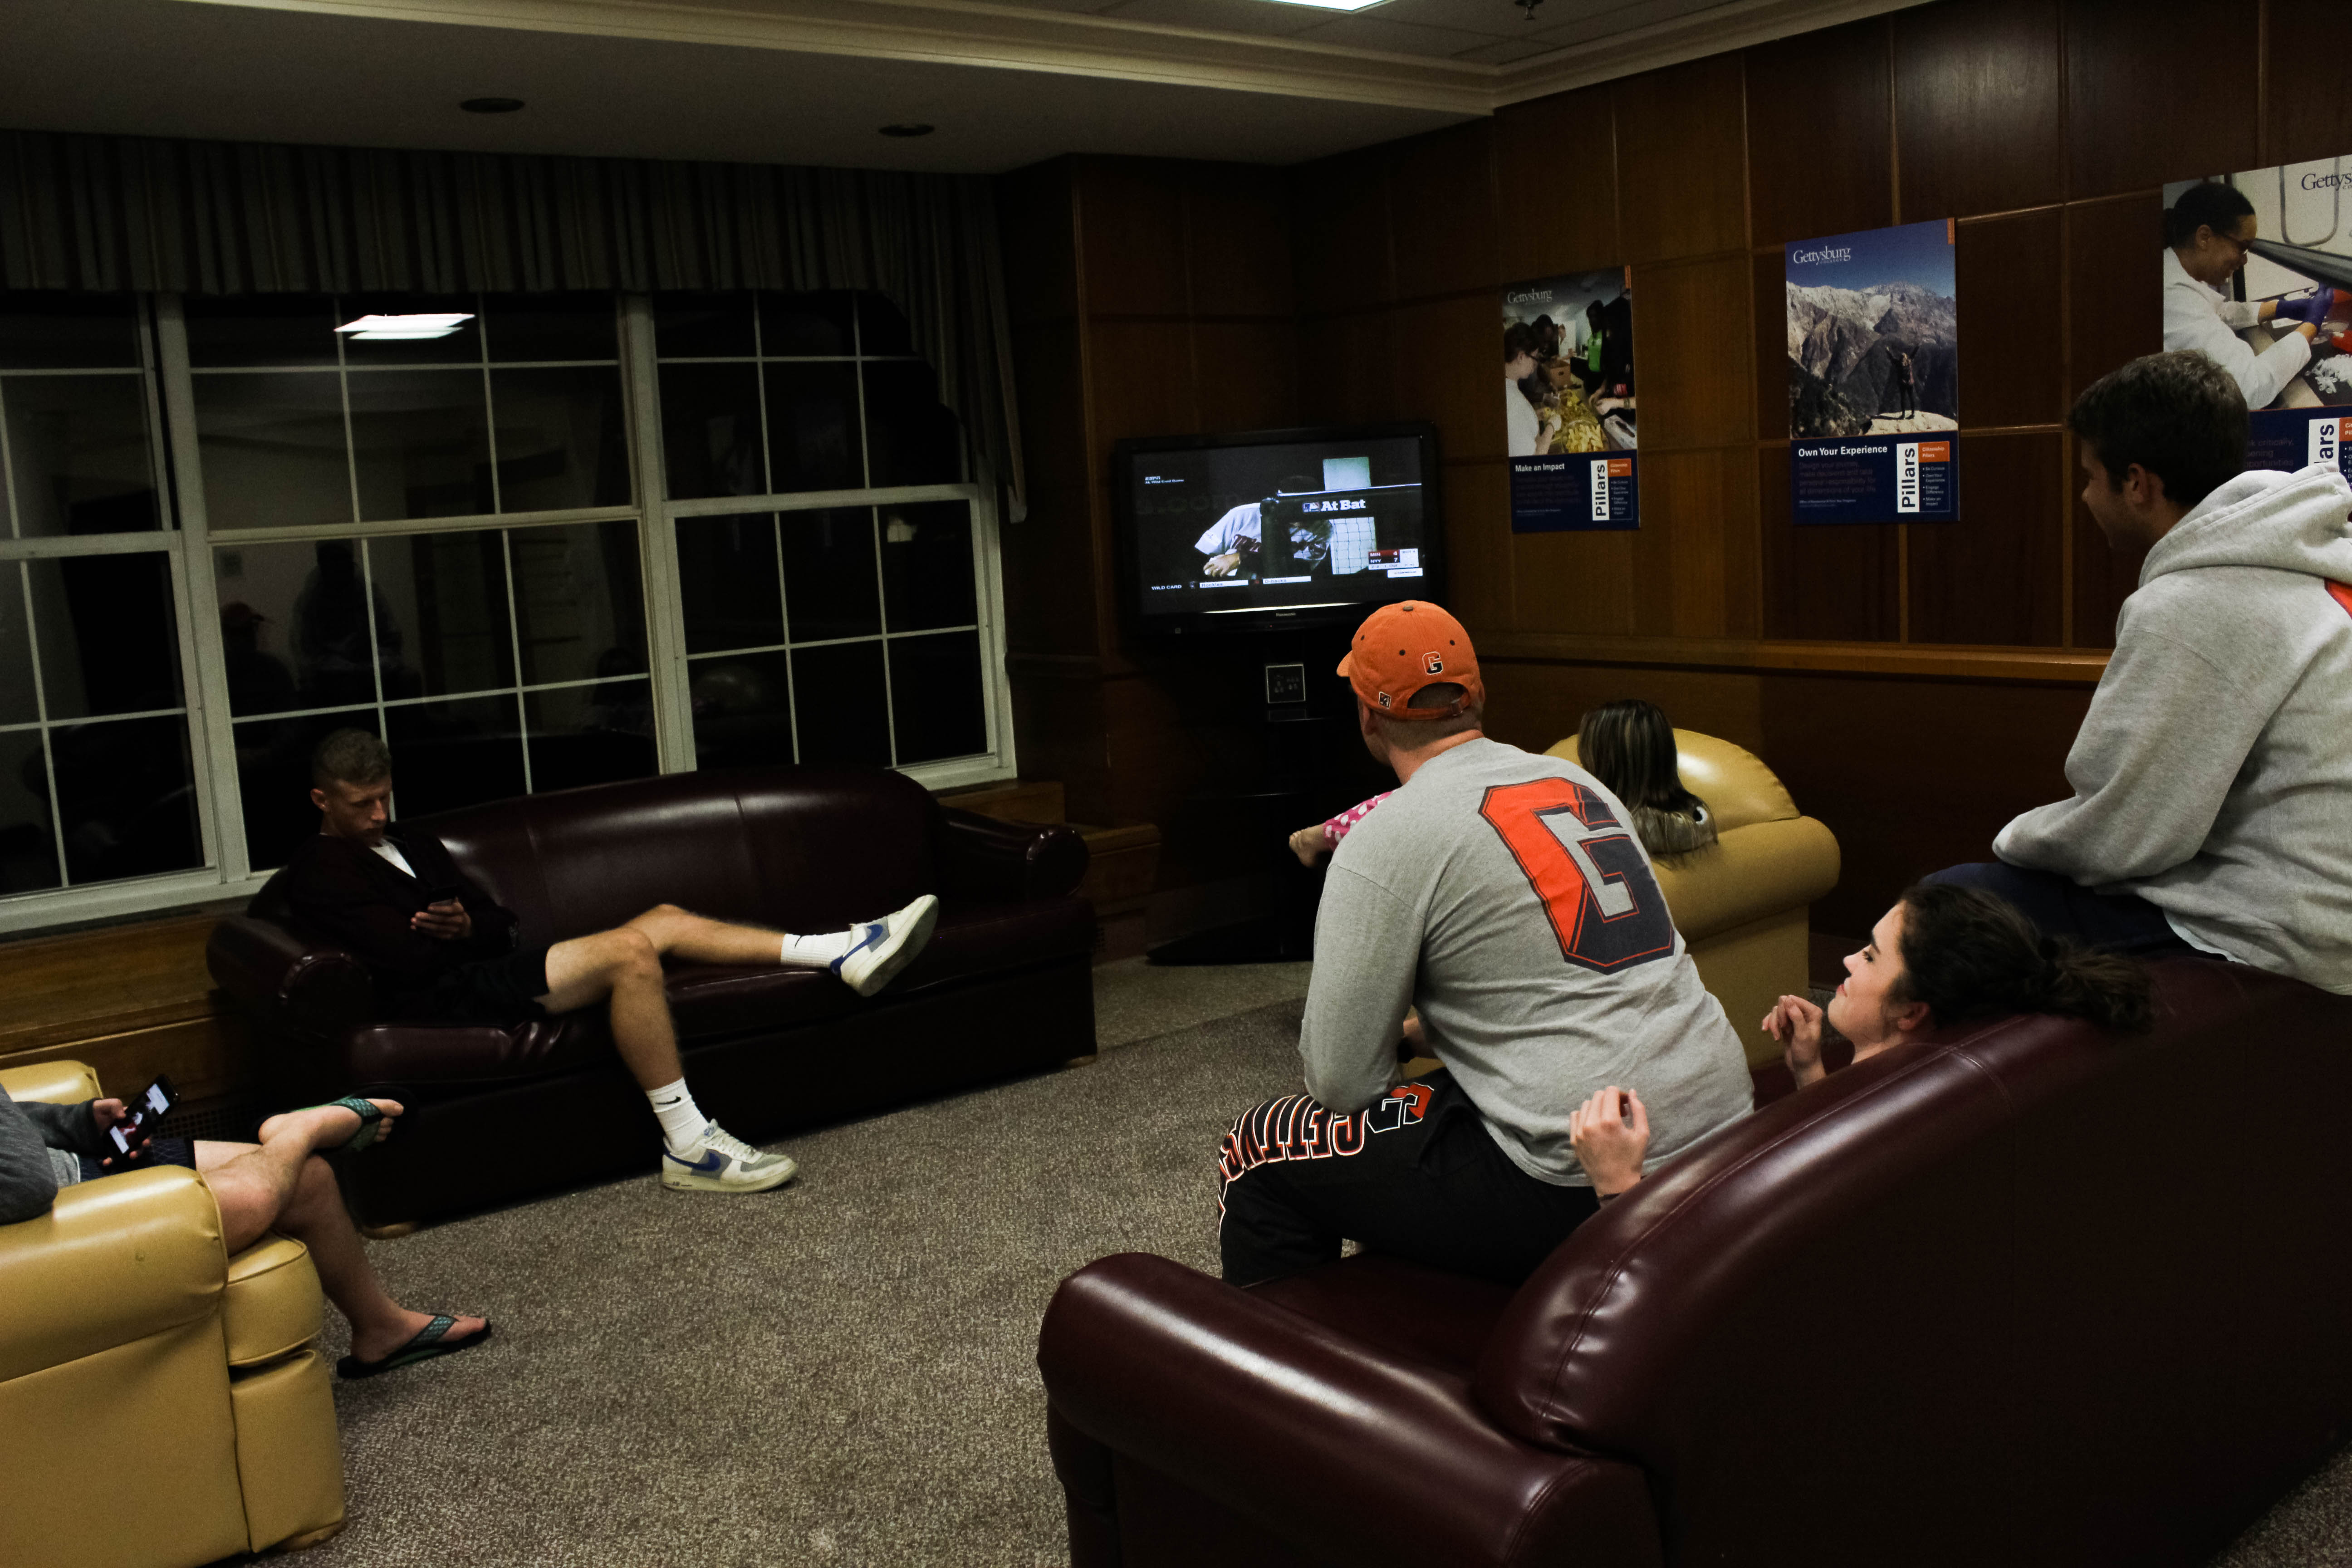 Students watch television in the Musselman Hall common room (Photo Claire Bickers / The Gettysburgian)